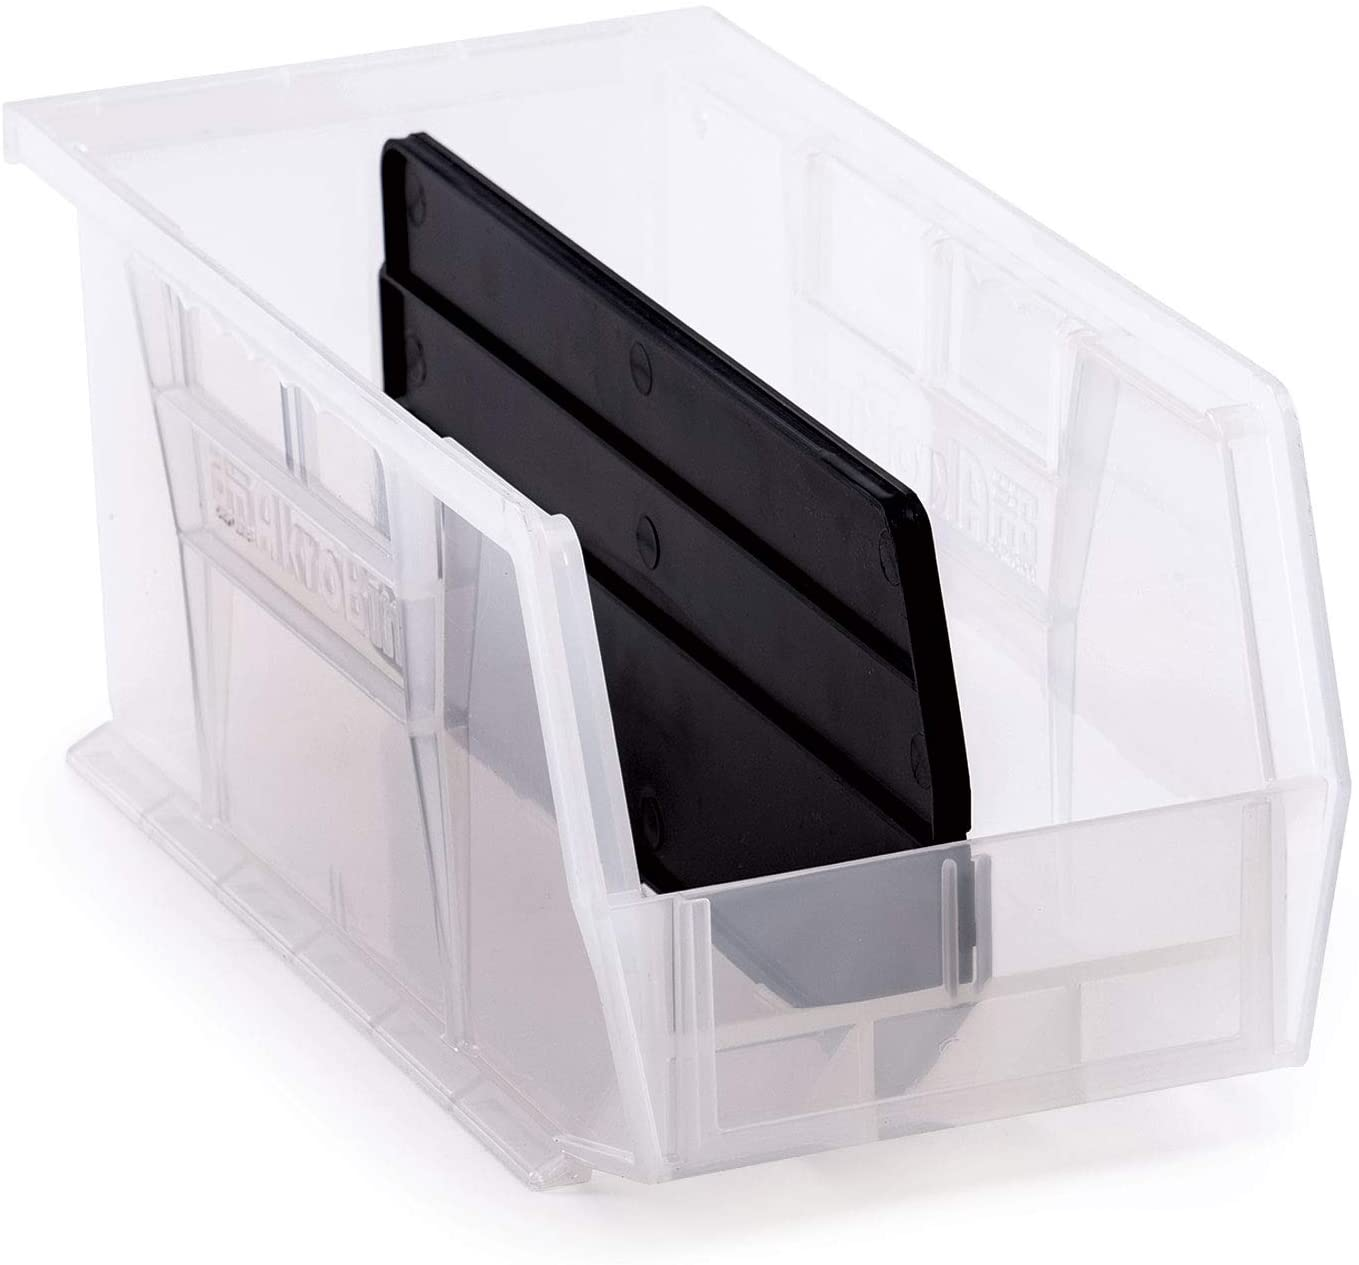 AkroBin 30230 Semi-Clear Stack & Hang Bins 10-7/8 x 5-1/2 x 5 Bundle with Length Dividers